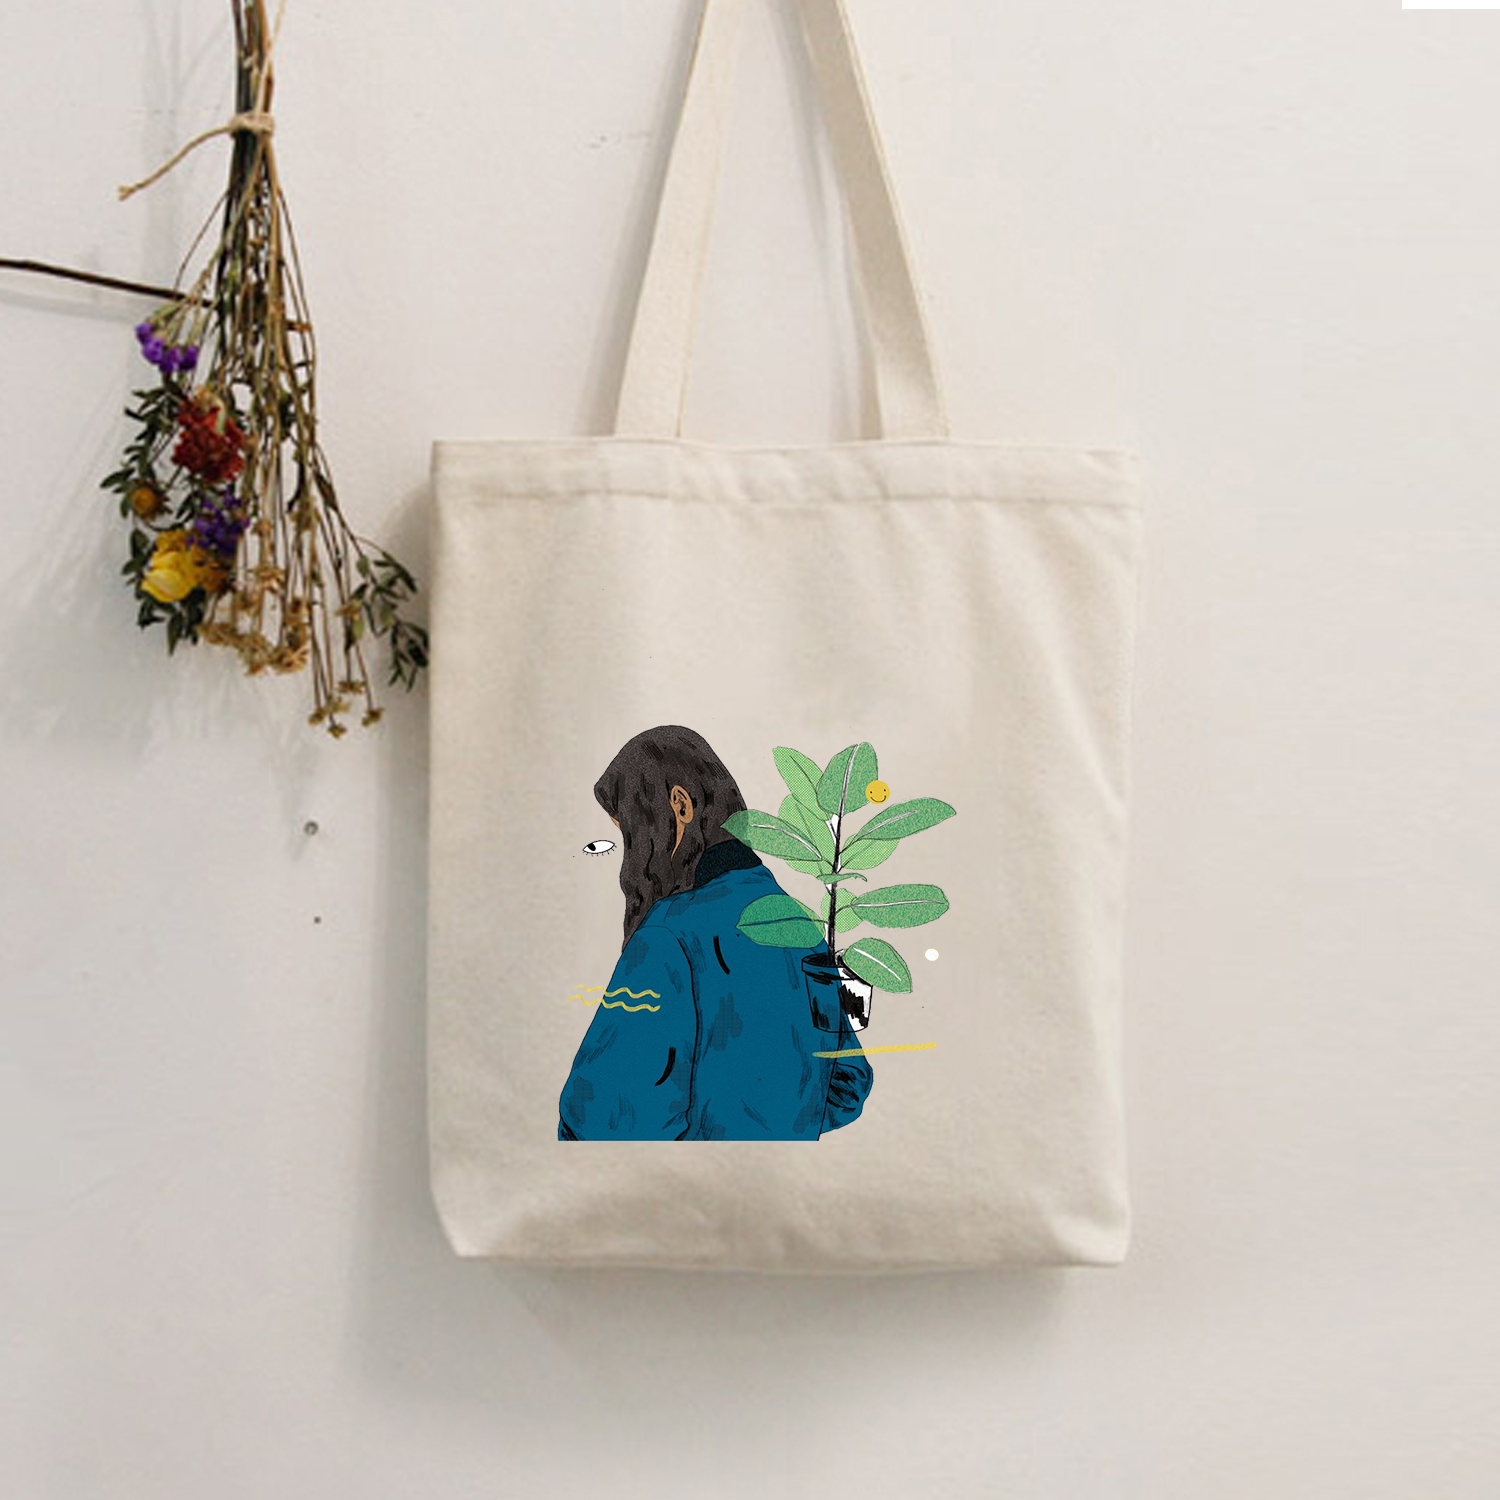 Cute Print Pattern Shopping Bag Without Lining Women Casual Cotton Canvas Shopping Shoulder Bags Tote Bags  Eco Reusable